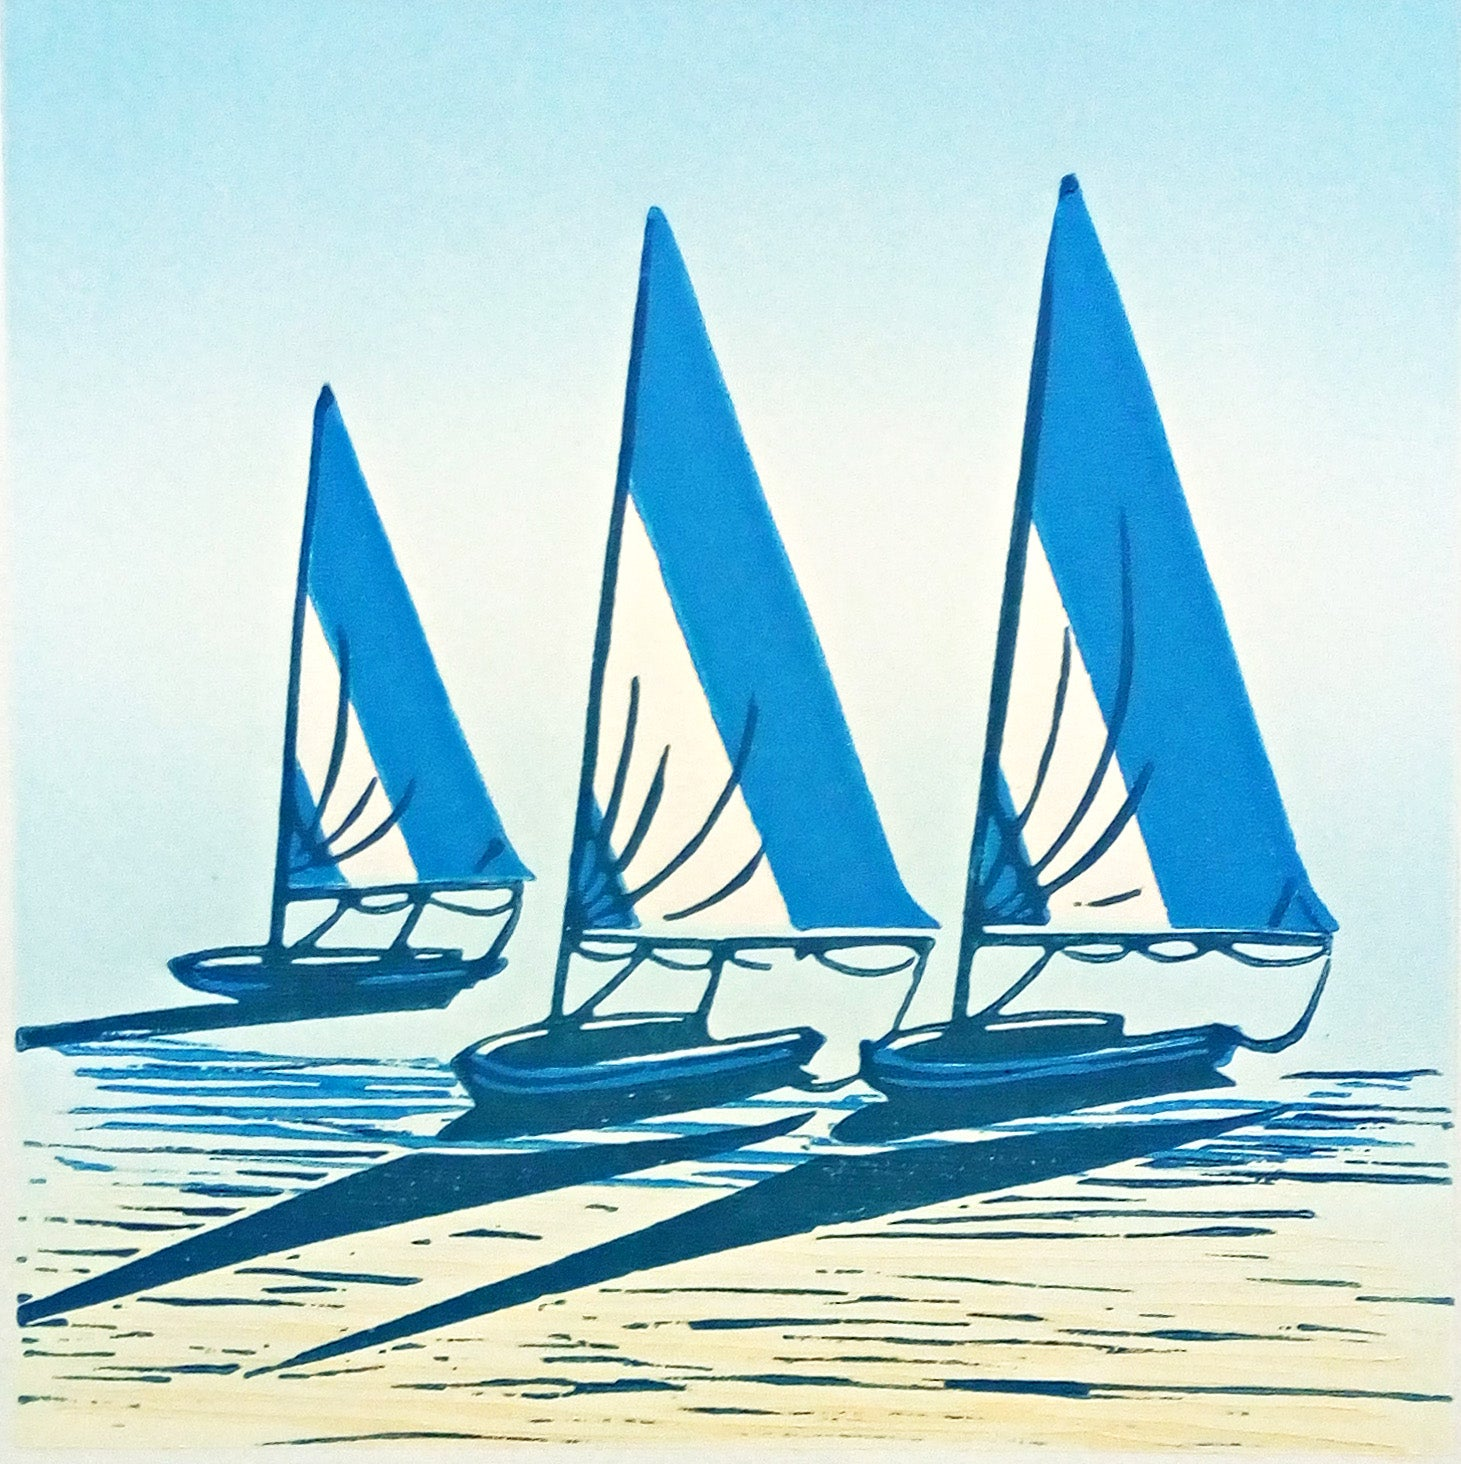 Hand Printed Limited Edition Colour Linocut of Boats